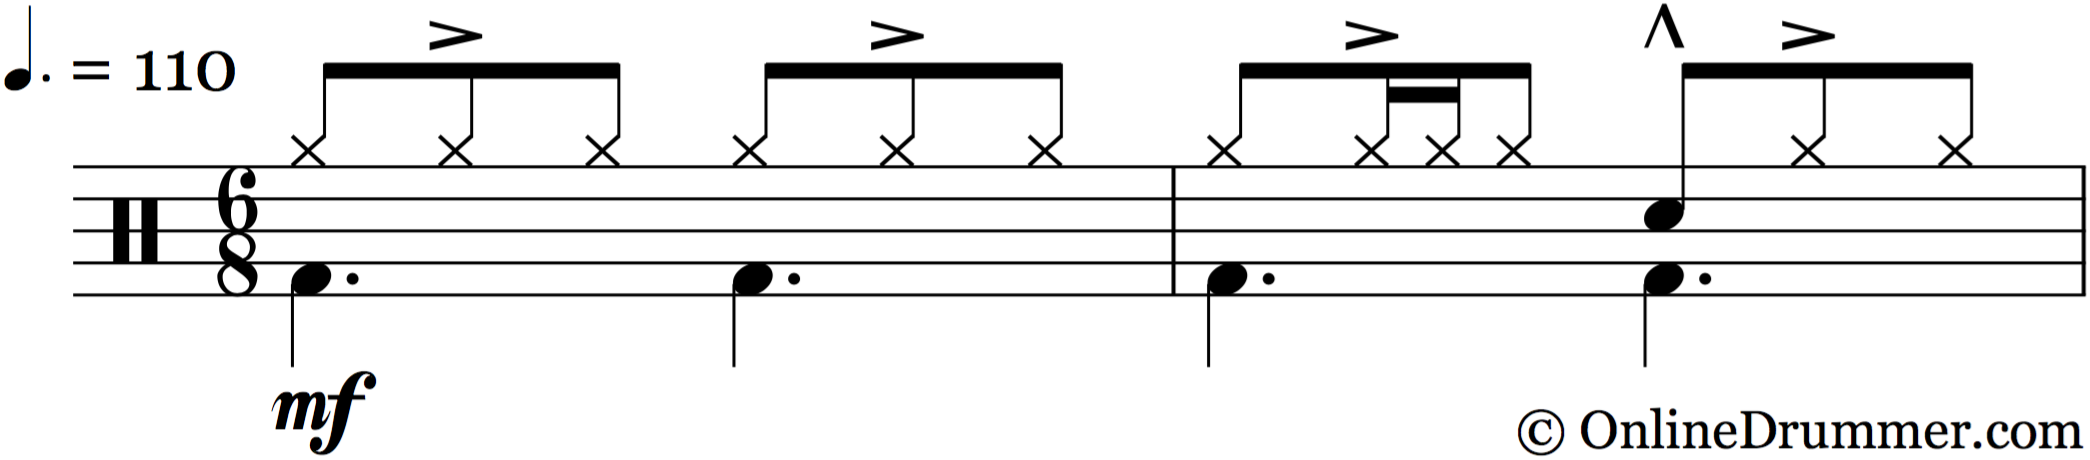 Accenting the Middle Note in Compound Meter